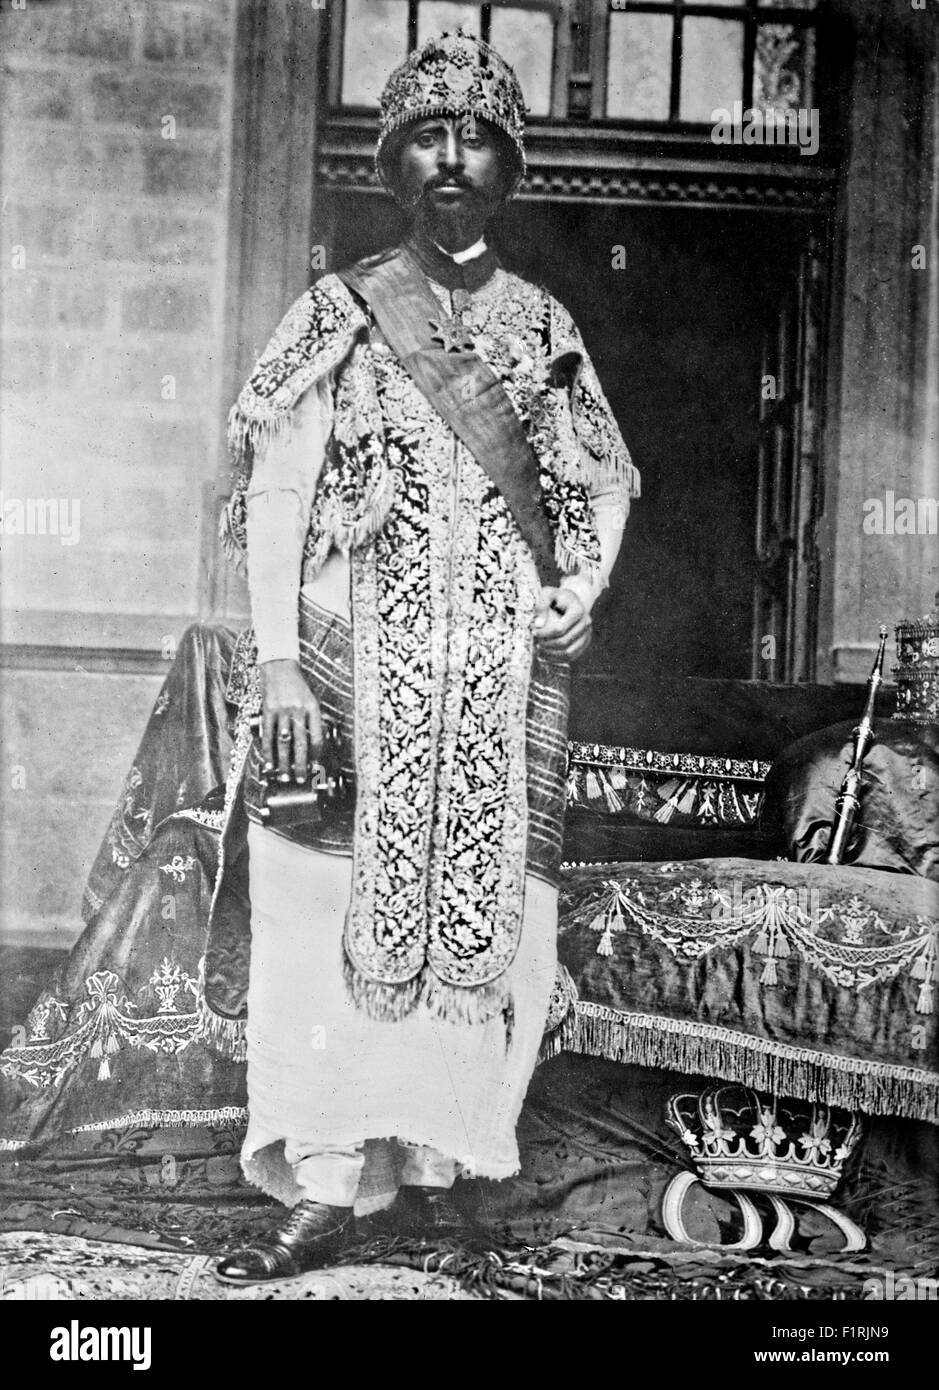 Haile Selassie I poses for a portrait between 1916 -1920 as Ethiopia's regent in Addis Ababa, Ethiopia. - Stock Image